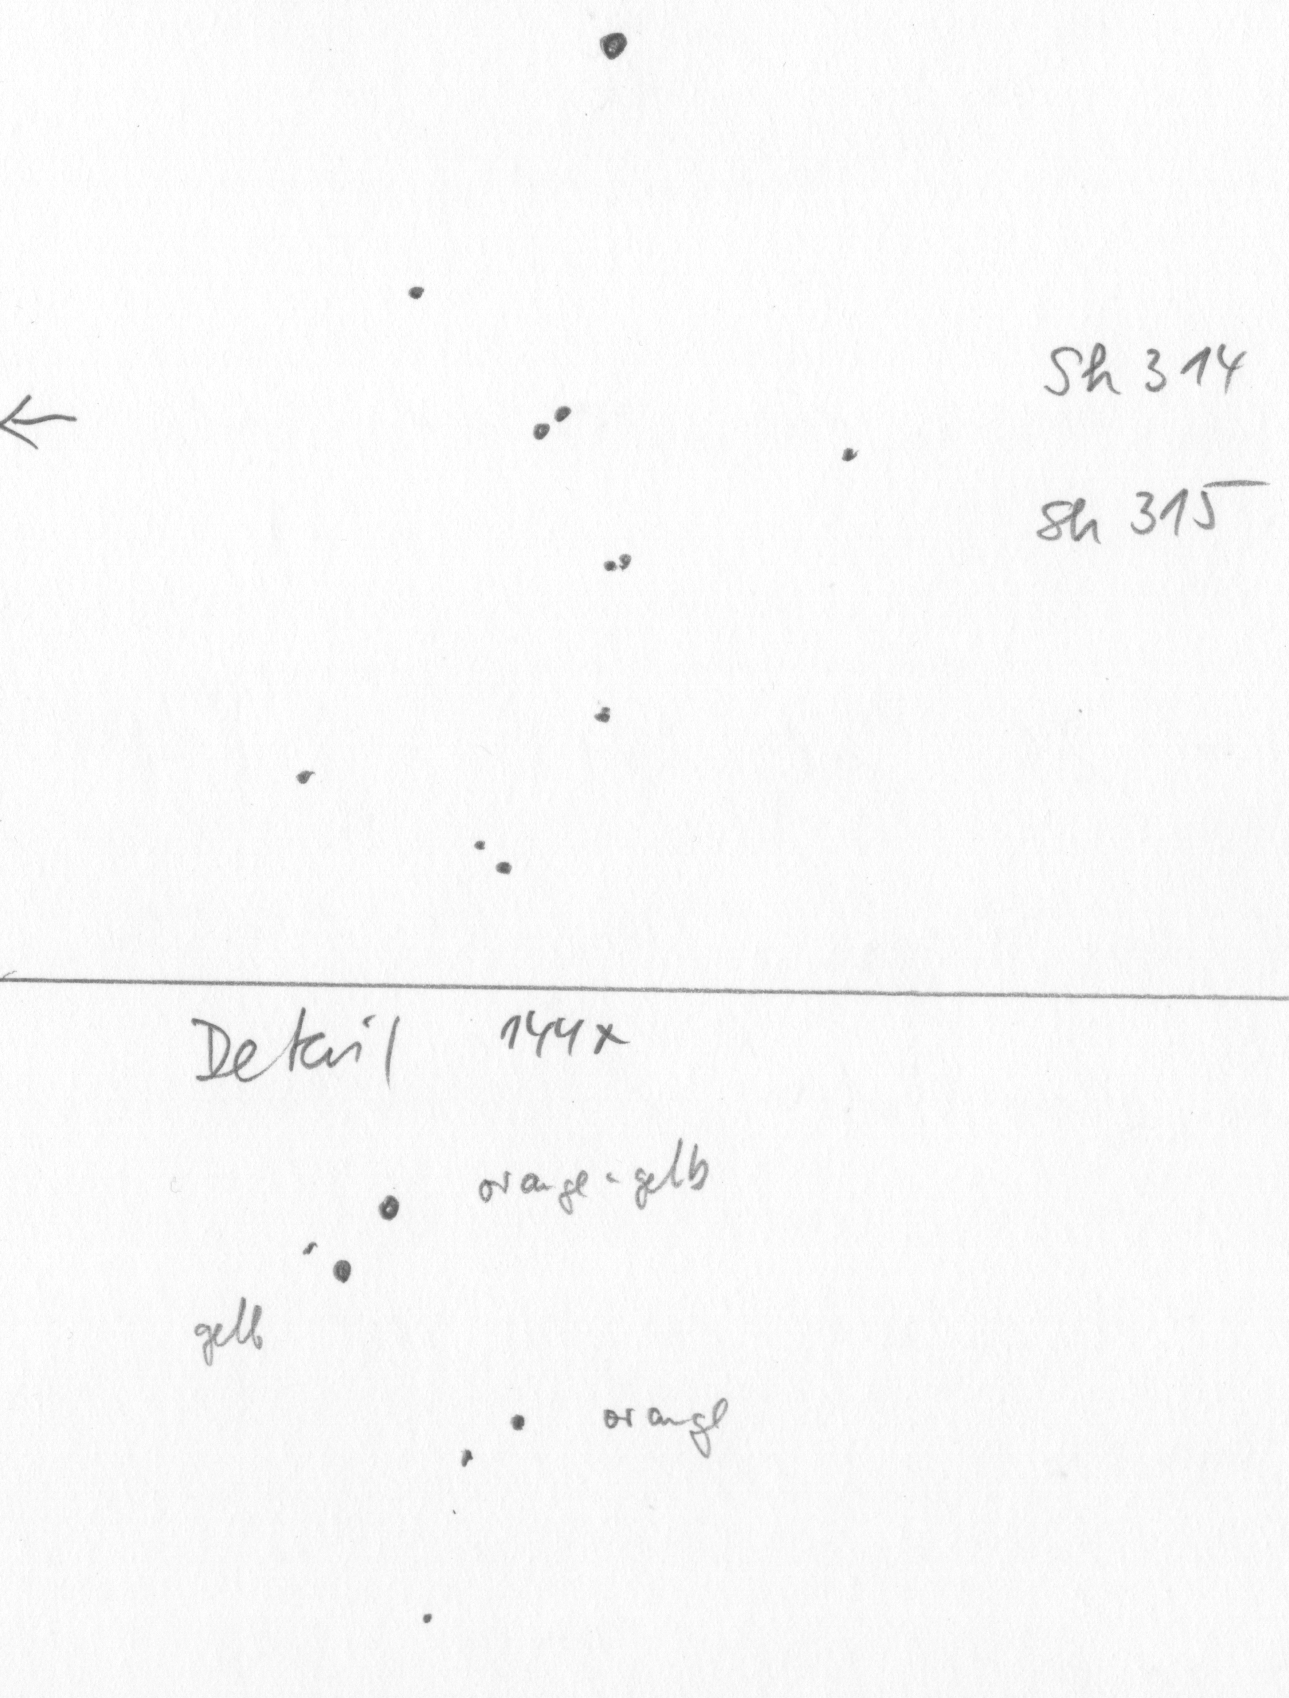 ../projects/double-stars/uwe-pilz/sketches/190726shj314_315.jpg